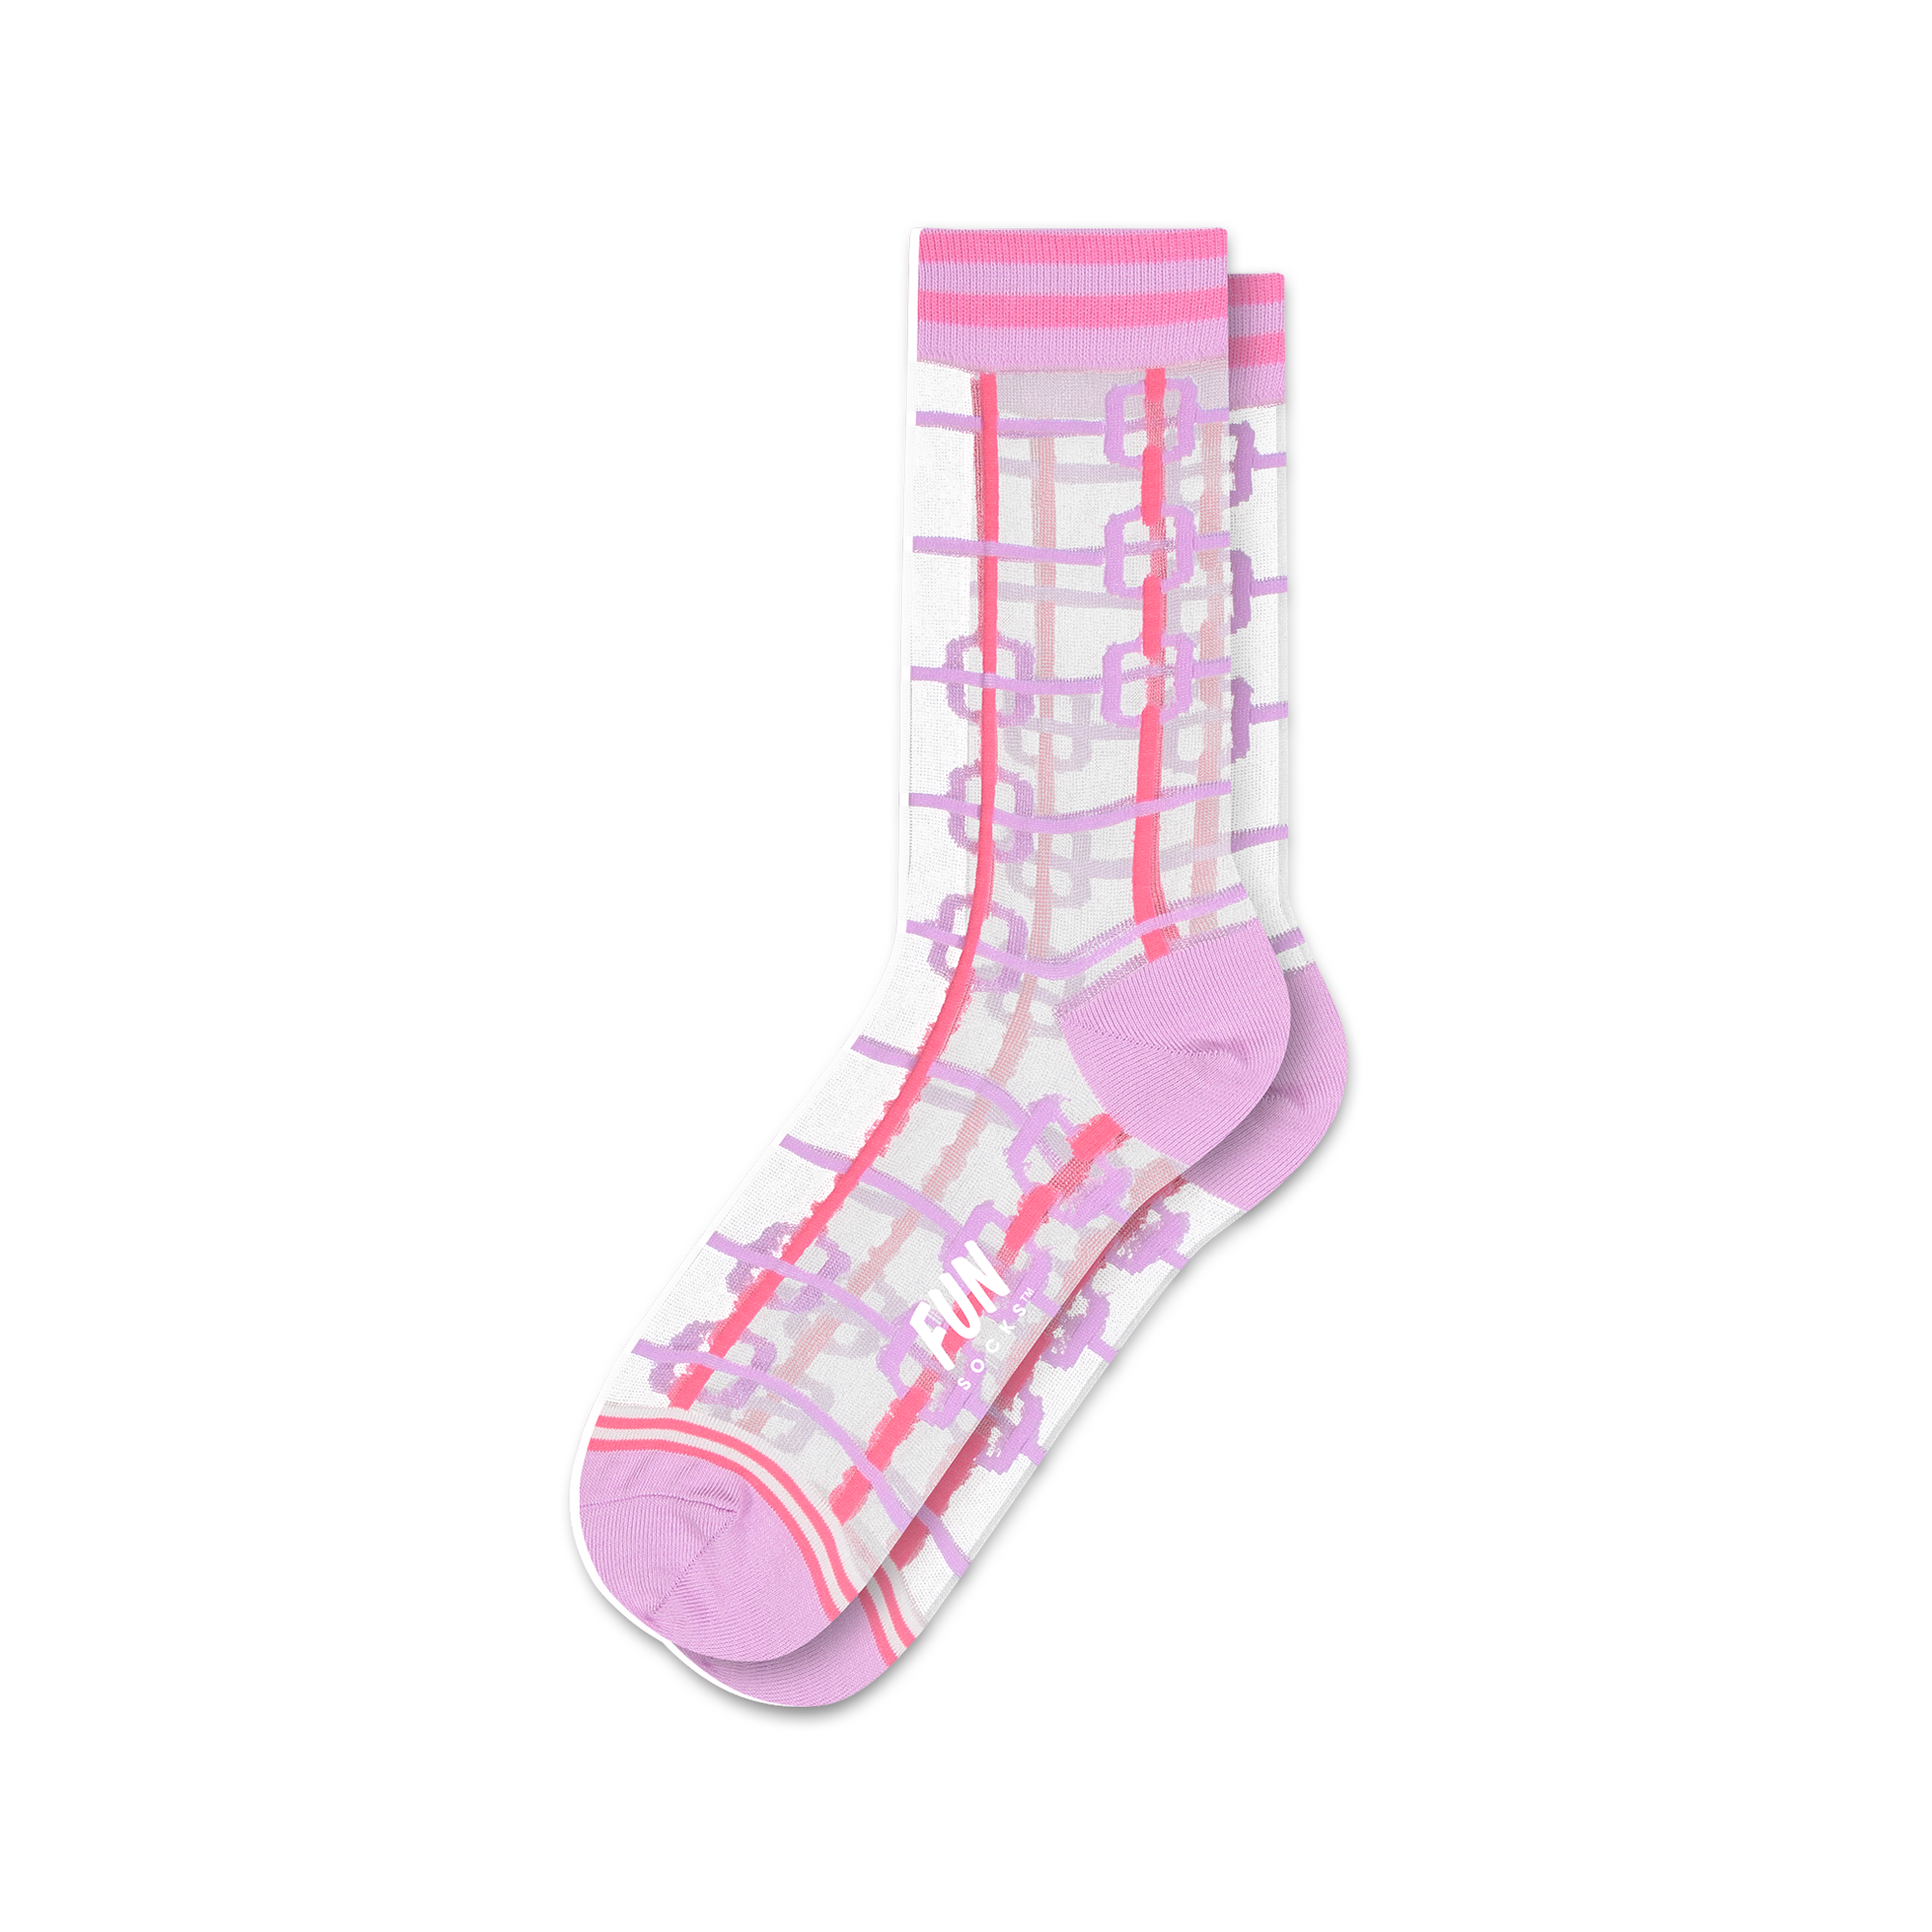 Fun Socks Chain Link Sheer Socks